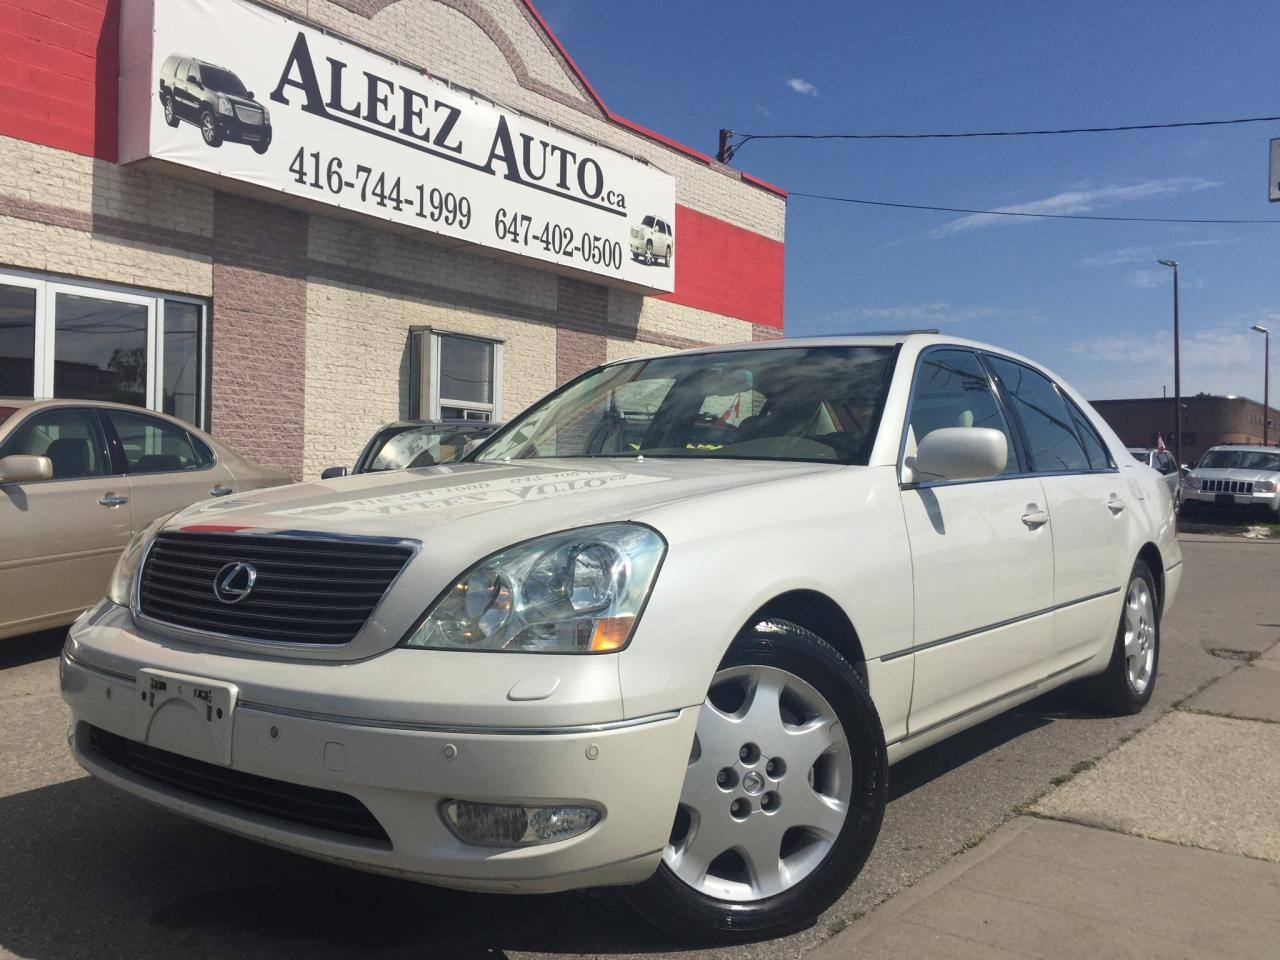 Used 2003 Lexus LS 430 1 owner vehicle !!! for Sale in North